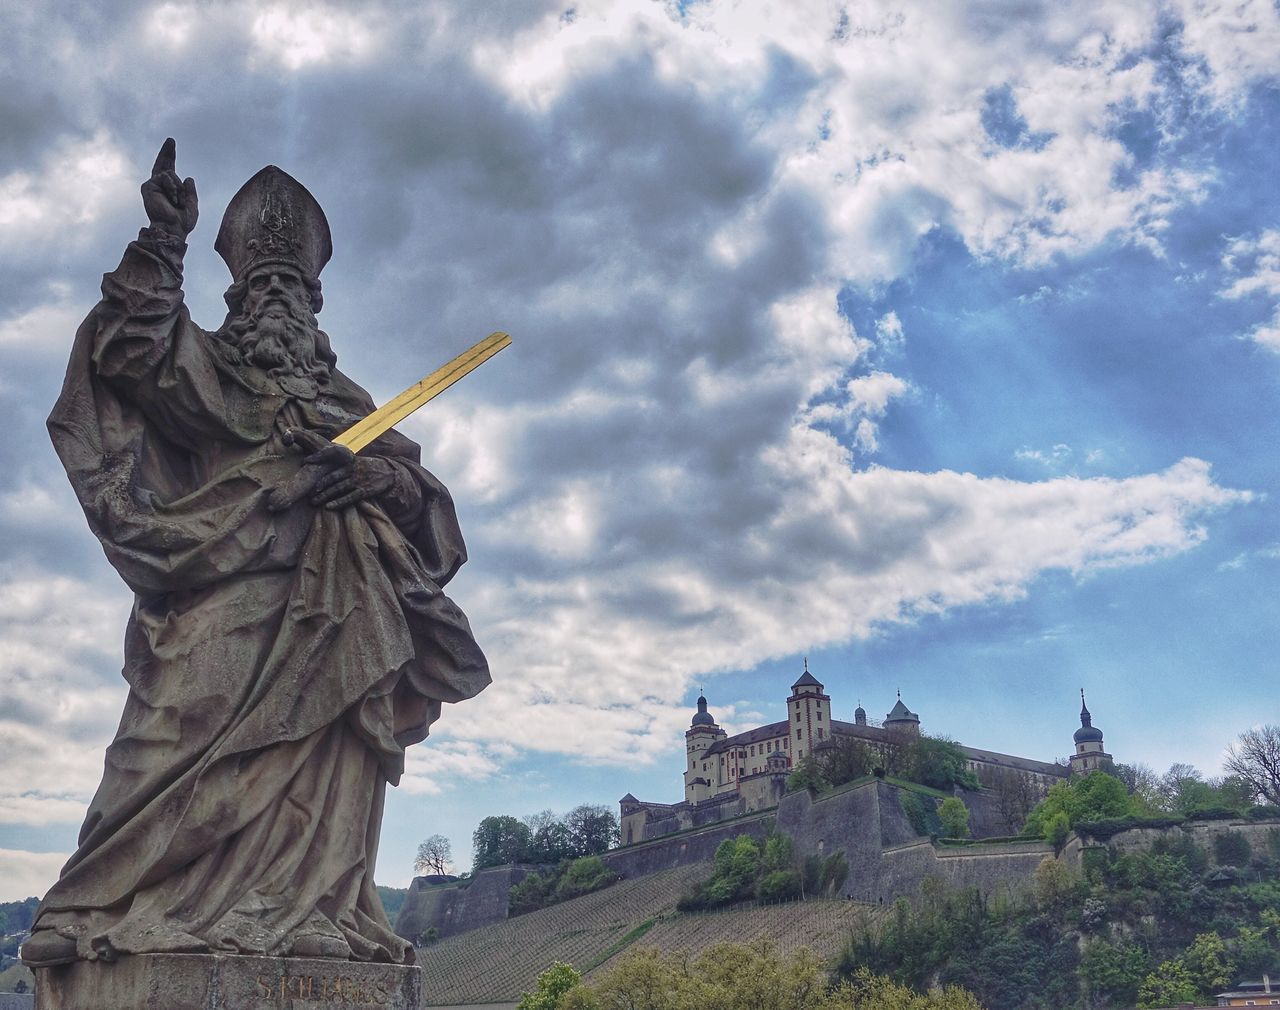 Glory! Statue Cloud - Sky Sculpture Sky History Travel Destinations Human Representation Built Structure Architecture Outdoors Monument Day Travel No People Low Angle View Building Exterior Würzburg Tourism Architecture Sonyrx100iv The Architect - 2017 EyeEm Awards The Great Outdoors - 2017 EyeEm Awards Europe The Architect - 2017 EyeEm Awards The Great Outdoors - 2017 EyeEm Awards